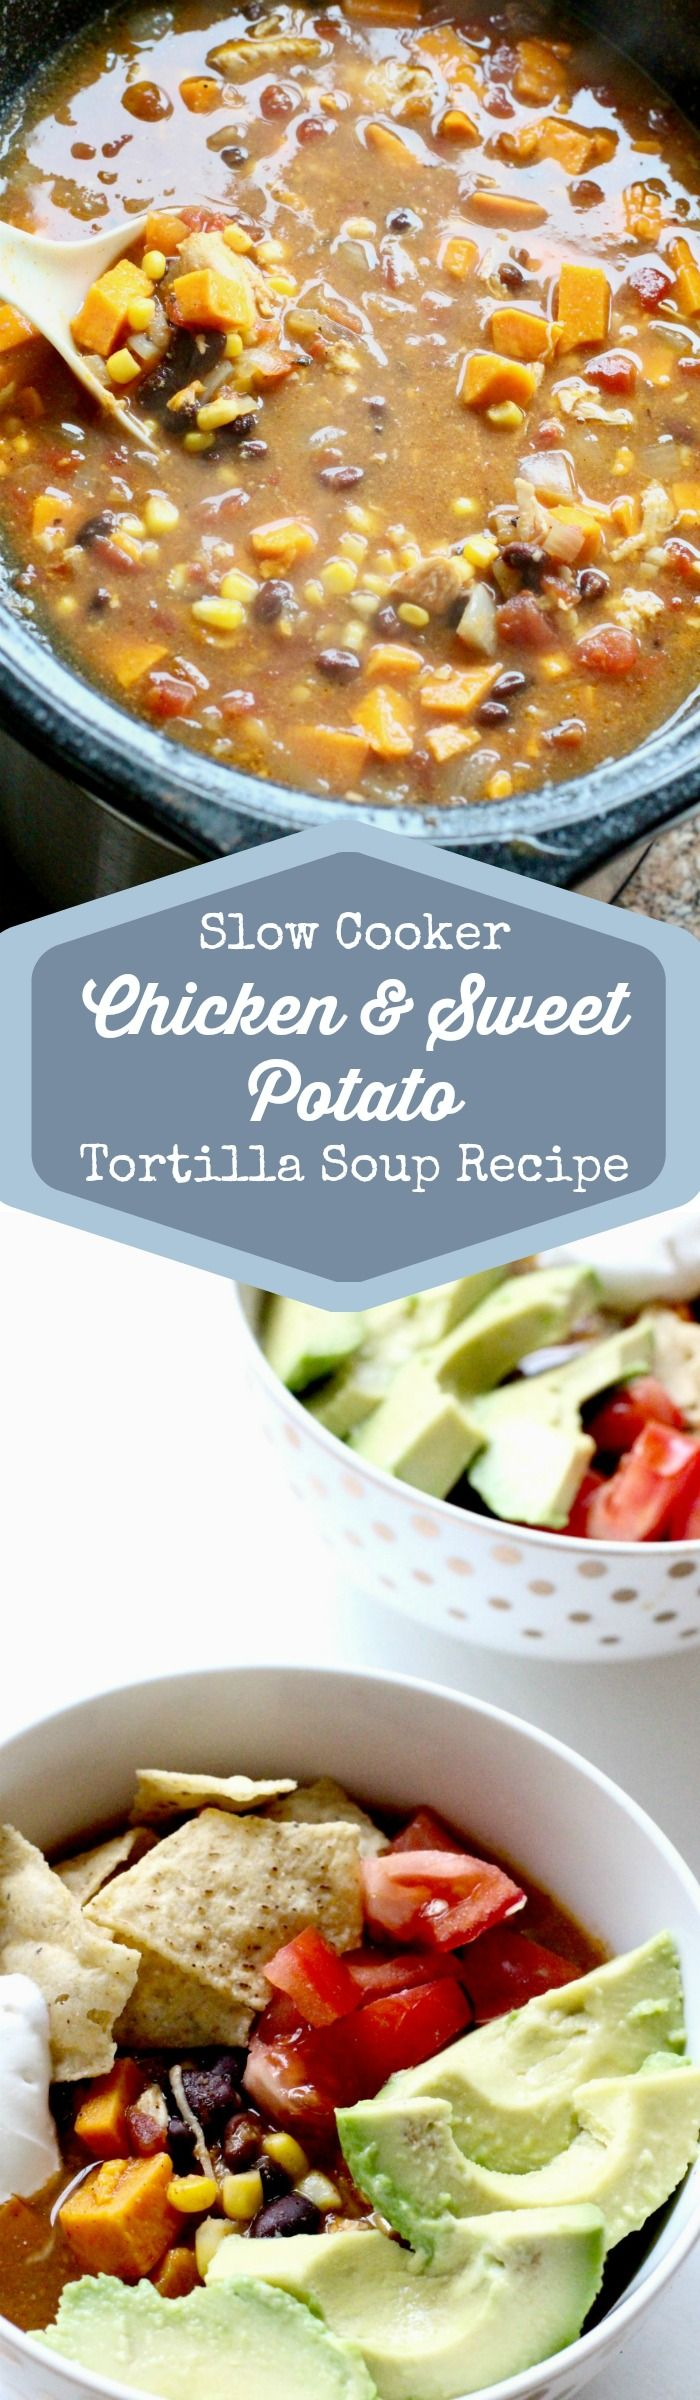 Chicken Sweet Potato Slow Cooker Tortilla Soup Recipe. This crockpot recipe is easy to put together, has great toppings and is an easy weeknight recipe for your family!